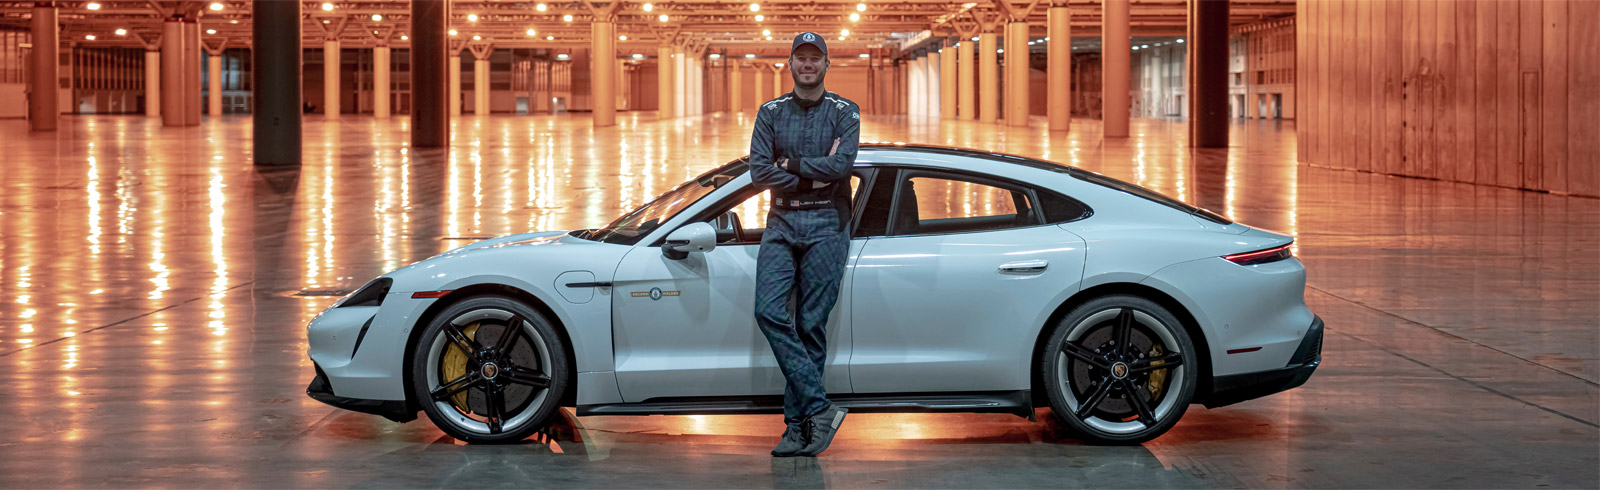 Porsche Taycan achieves new Guinness World Records title